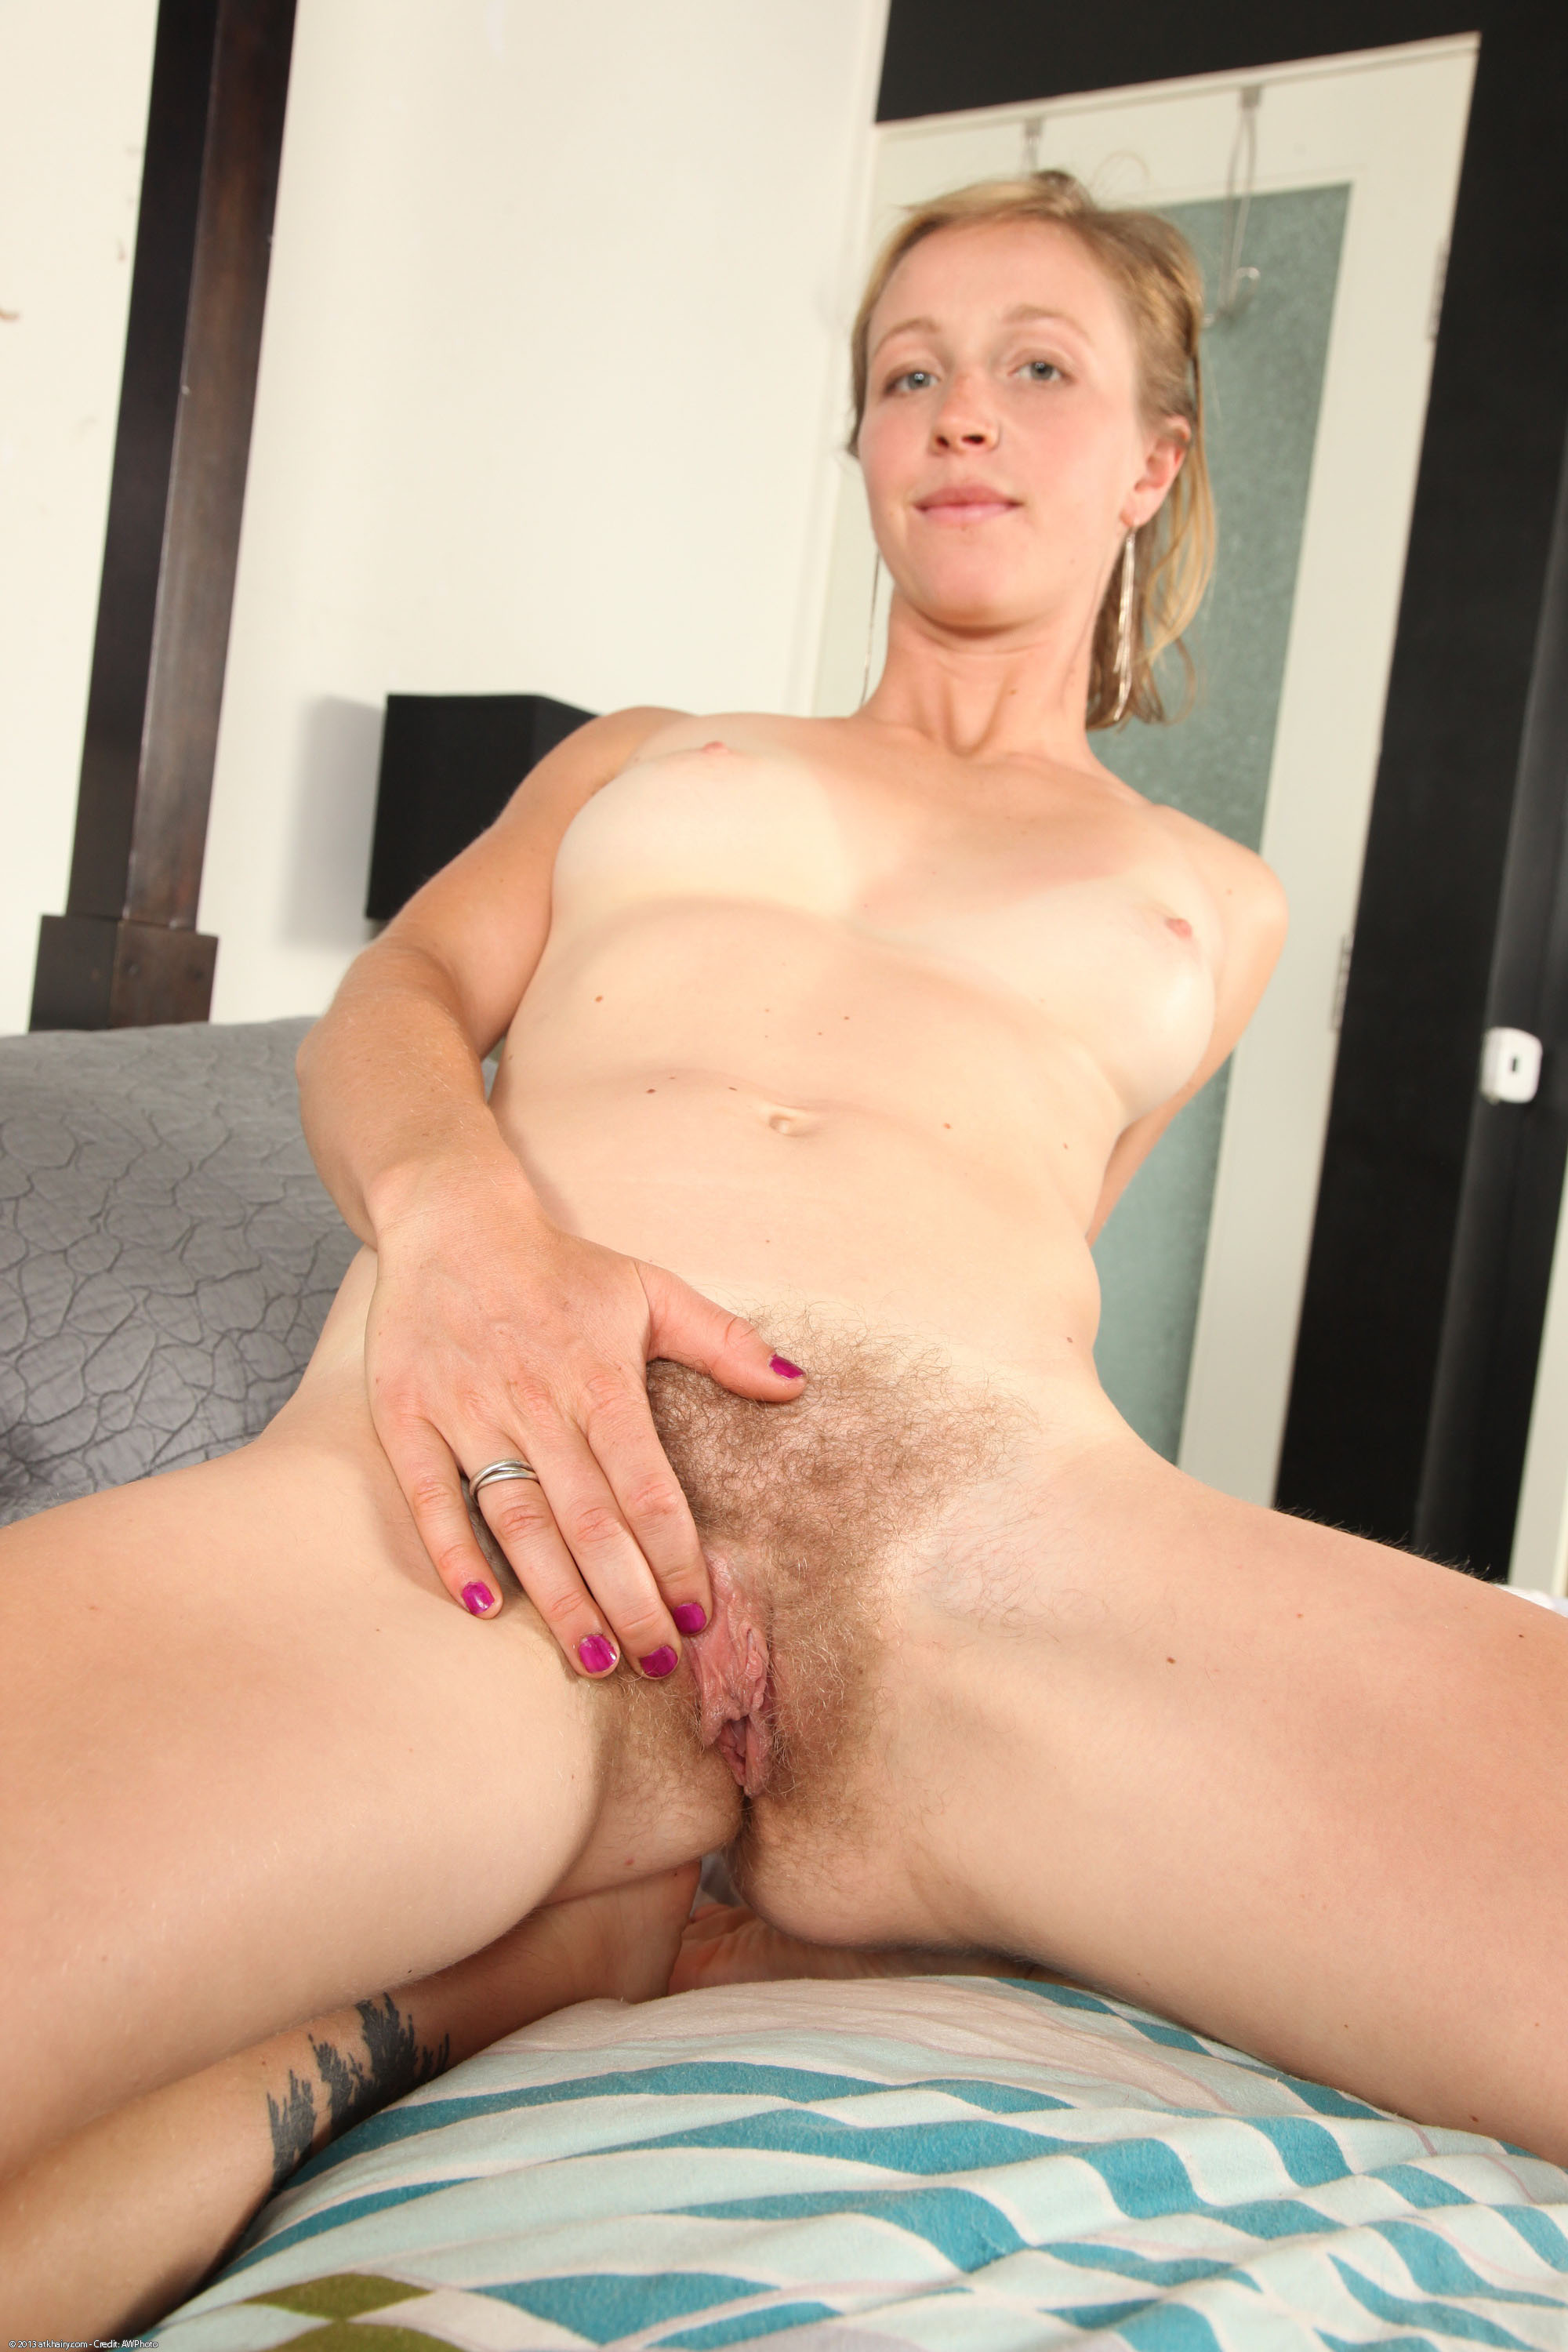 amkingdom hairy pussy blonde russian